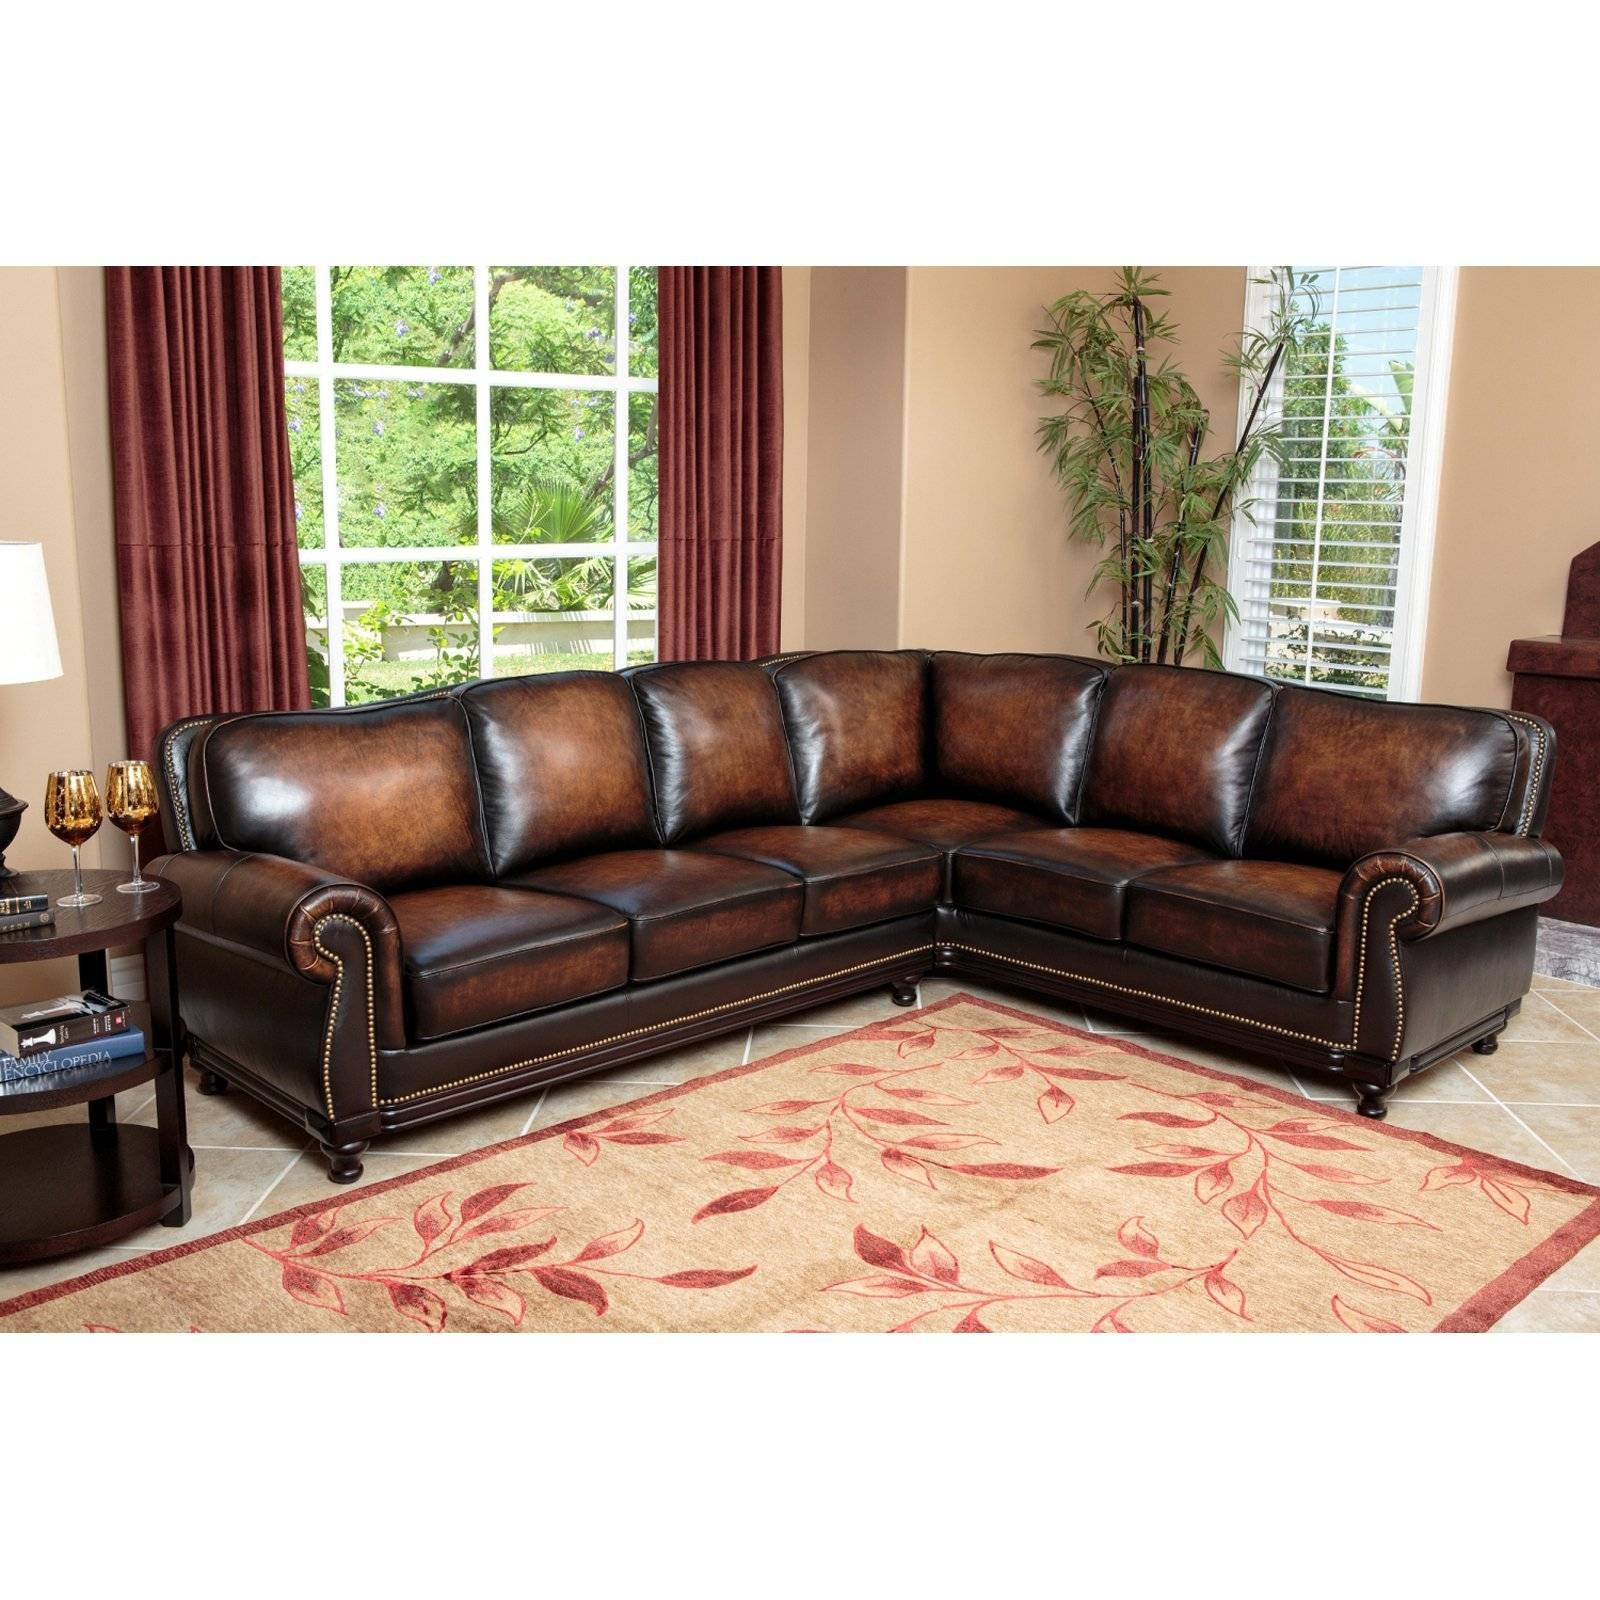 Abbyson Tekana Premium Italian Leather Sectional Sofa – Dark Brown Throughout Abbyson Sectional Sofas (View 3 of 15)